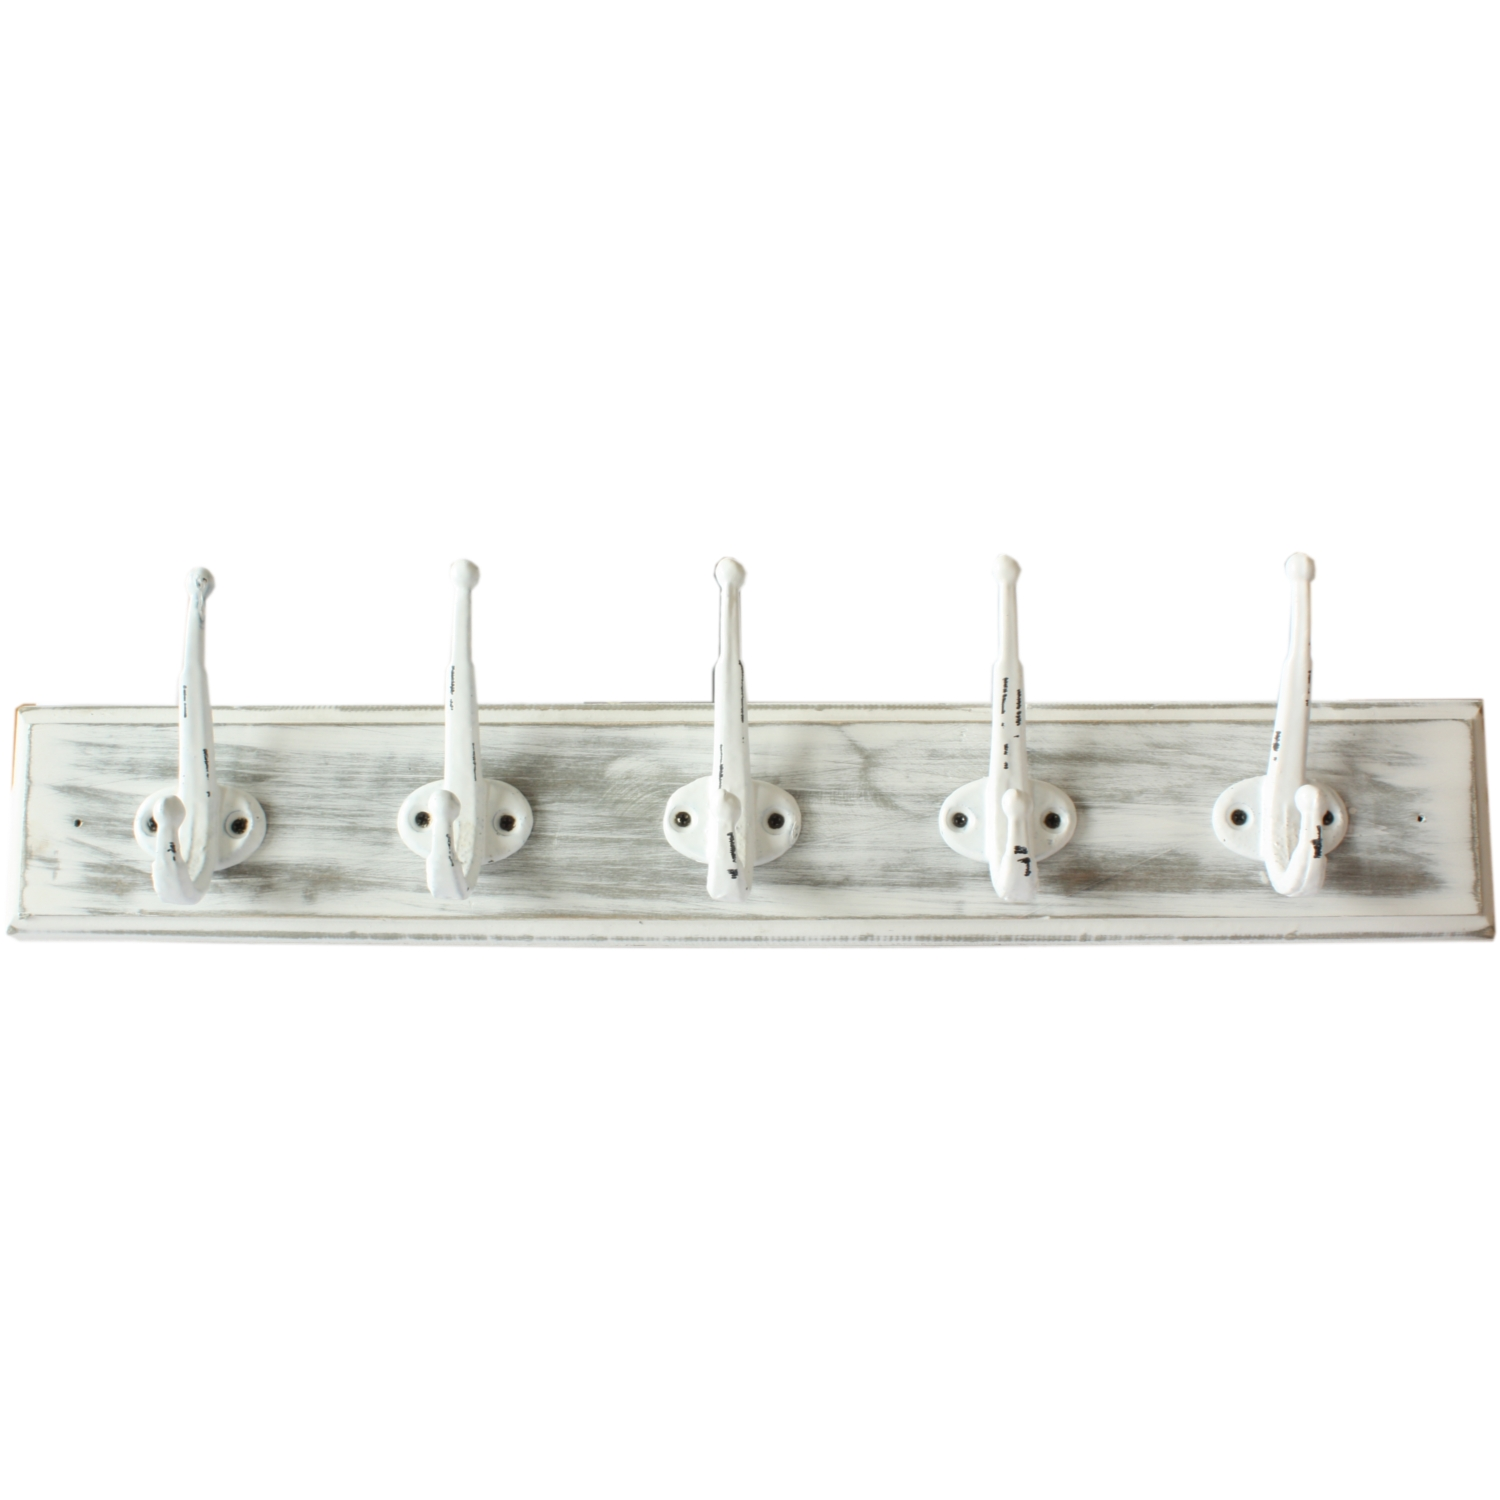 New england wooden white distressed 5 hook coat rack ebay White wooden coat hooks